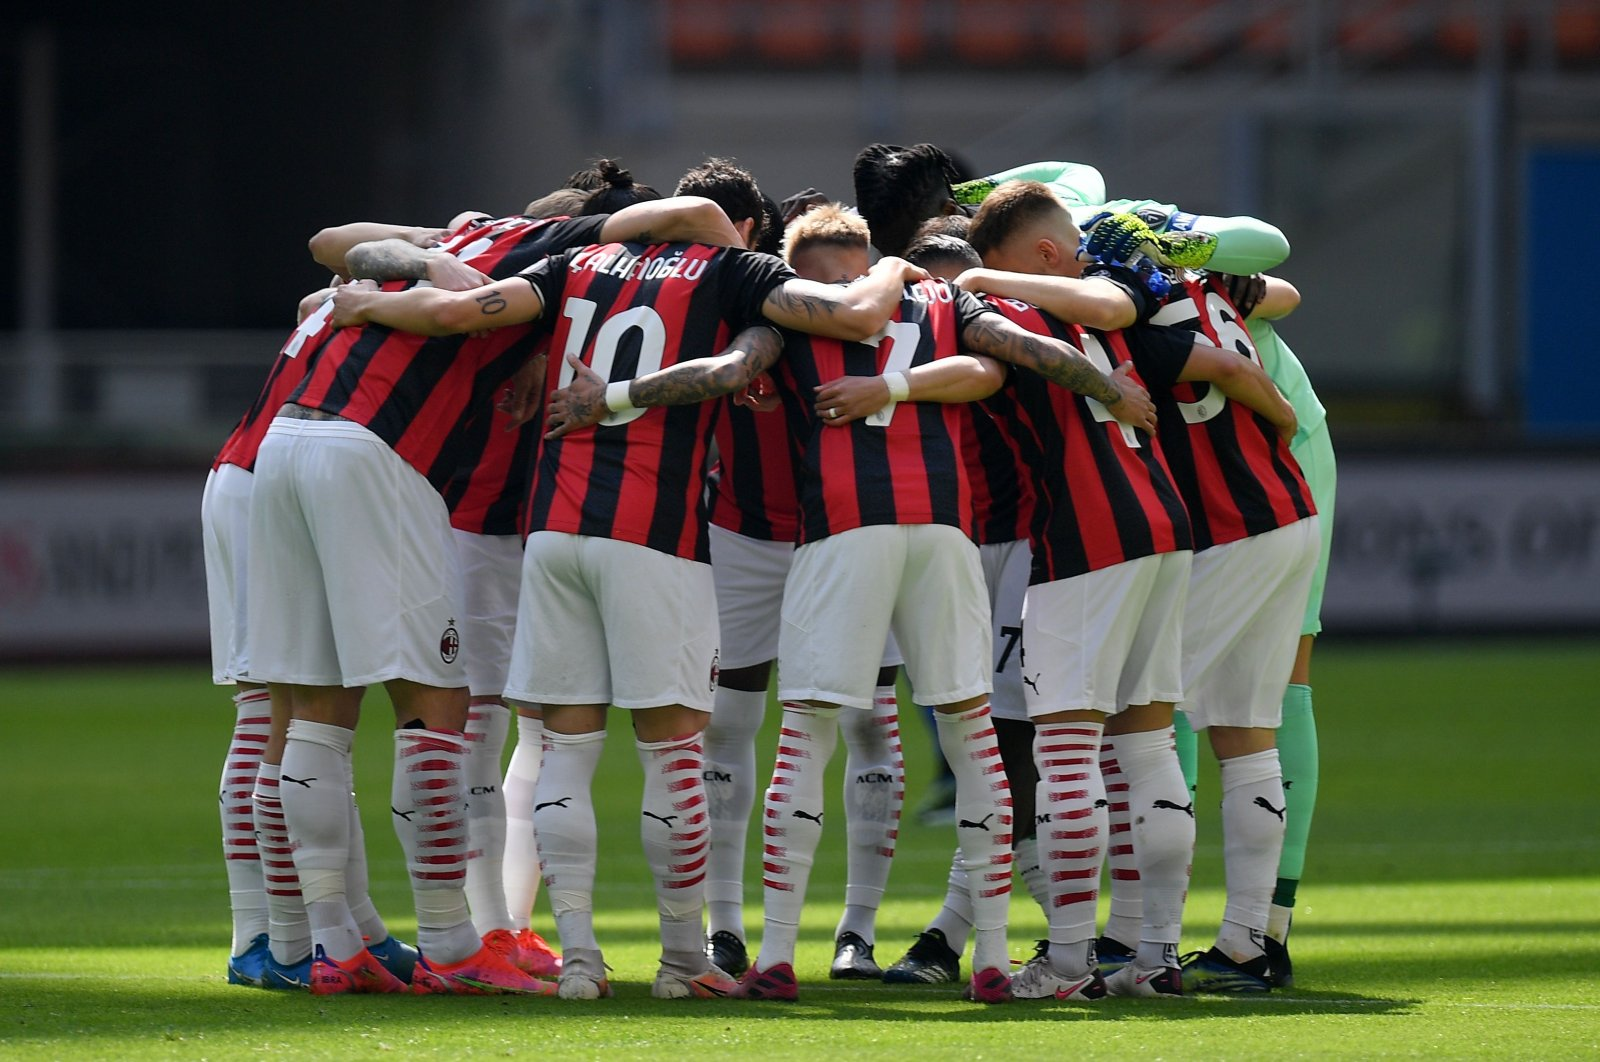 AC Milan players huddle before a Serie A match against Sampdoria at the San Siro stadium, in Milan, Italy, April 3, 2021. (Reuters Photo)